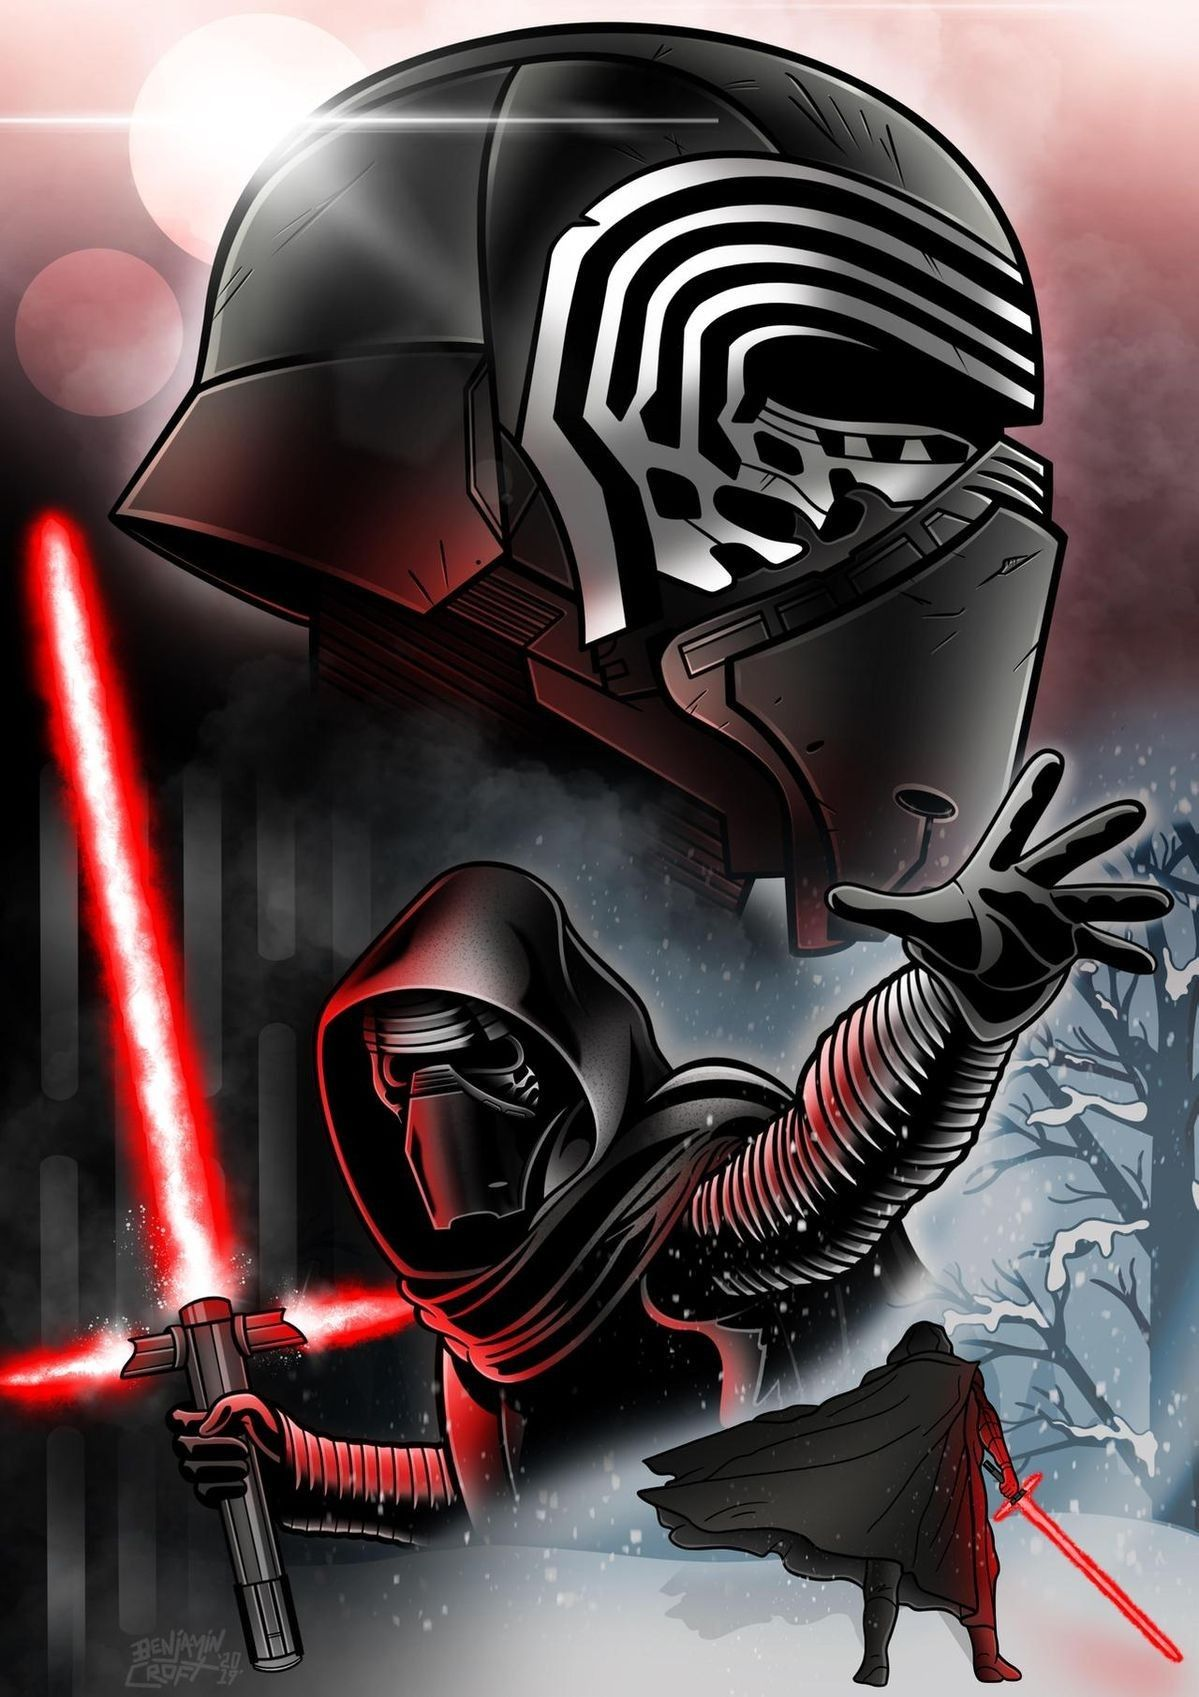 Pin by Jimmy Moreno on Kylo Ren in 2020 Star wars poster